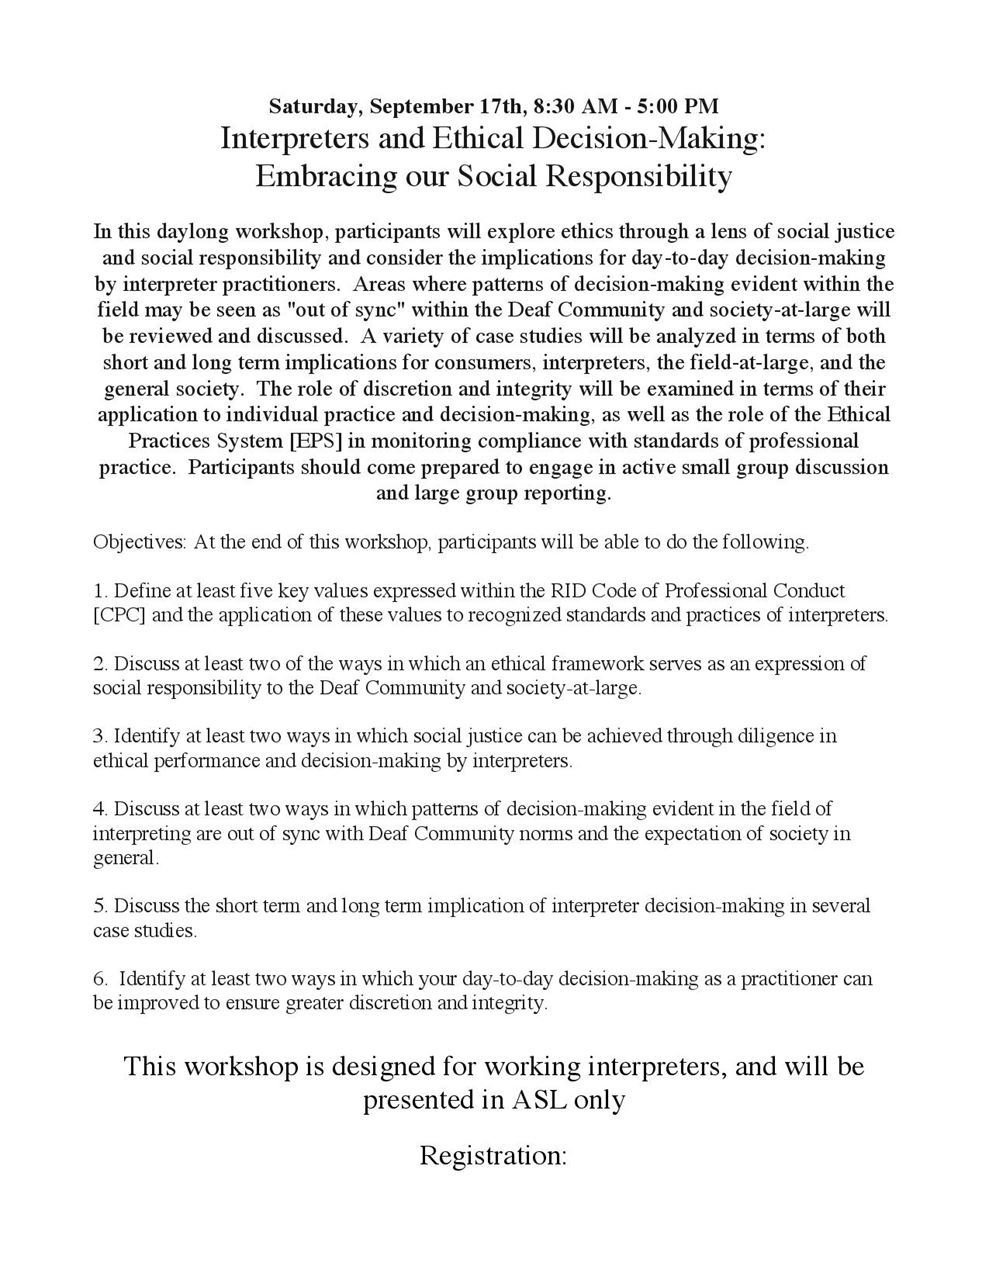 Flyer for Interpreters and Ethical Decision-Making Embracing our Social Responsibility